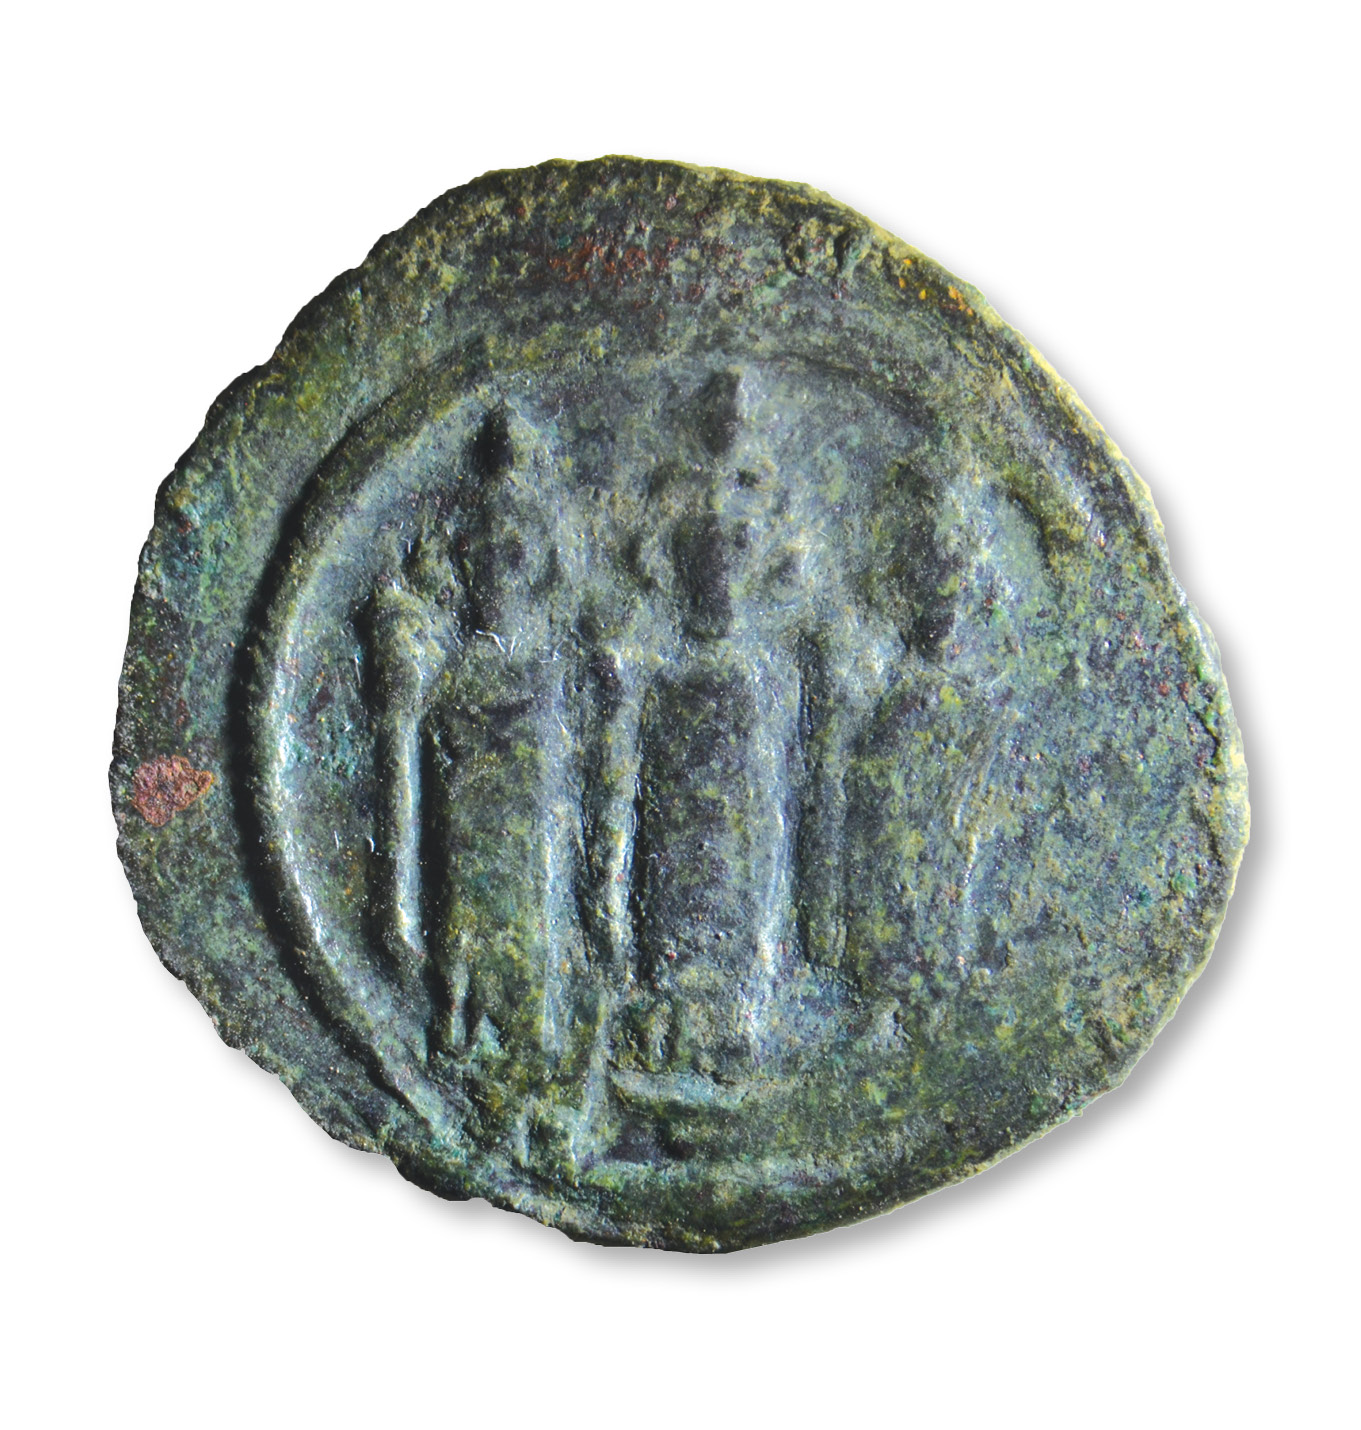 RIGHT An early Islamic coin found in a coin hoard in the House of the Scroll. It depicts three caliphs with long robes and headgear featuring crosses. This motif is based on Byzantine representations of bishops.